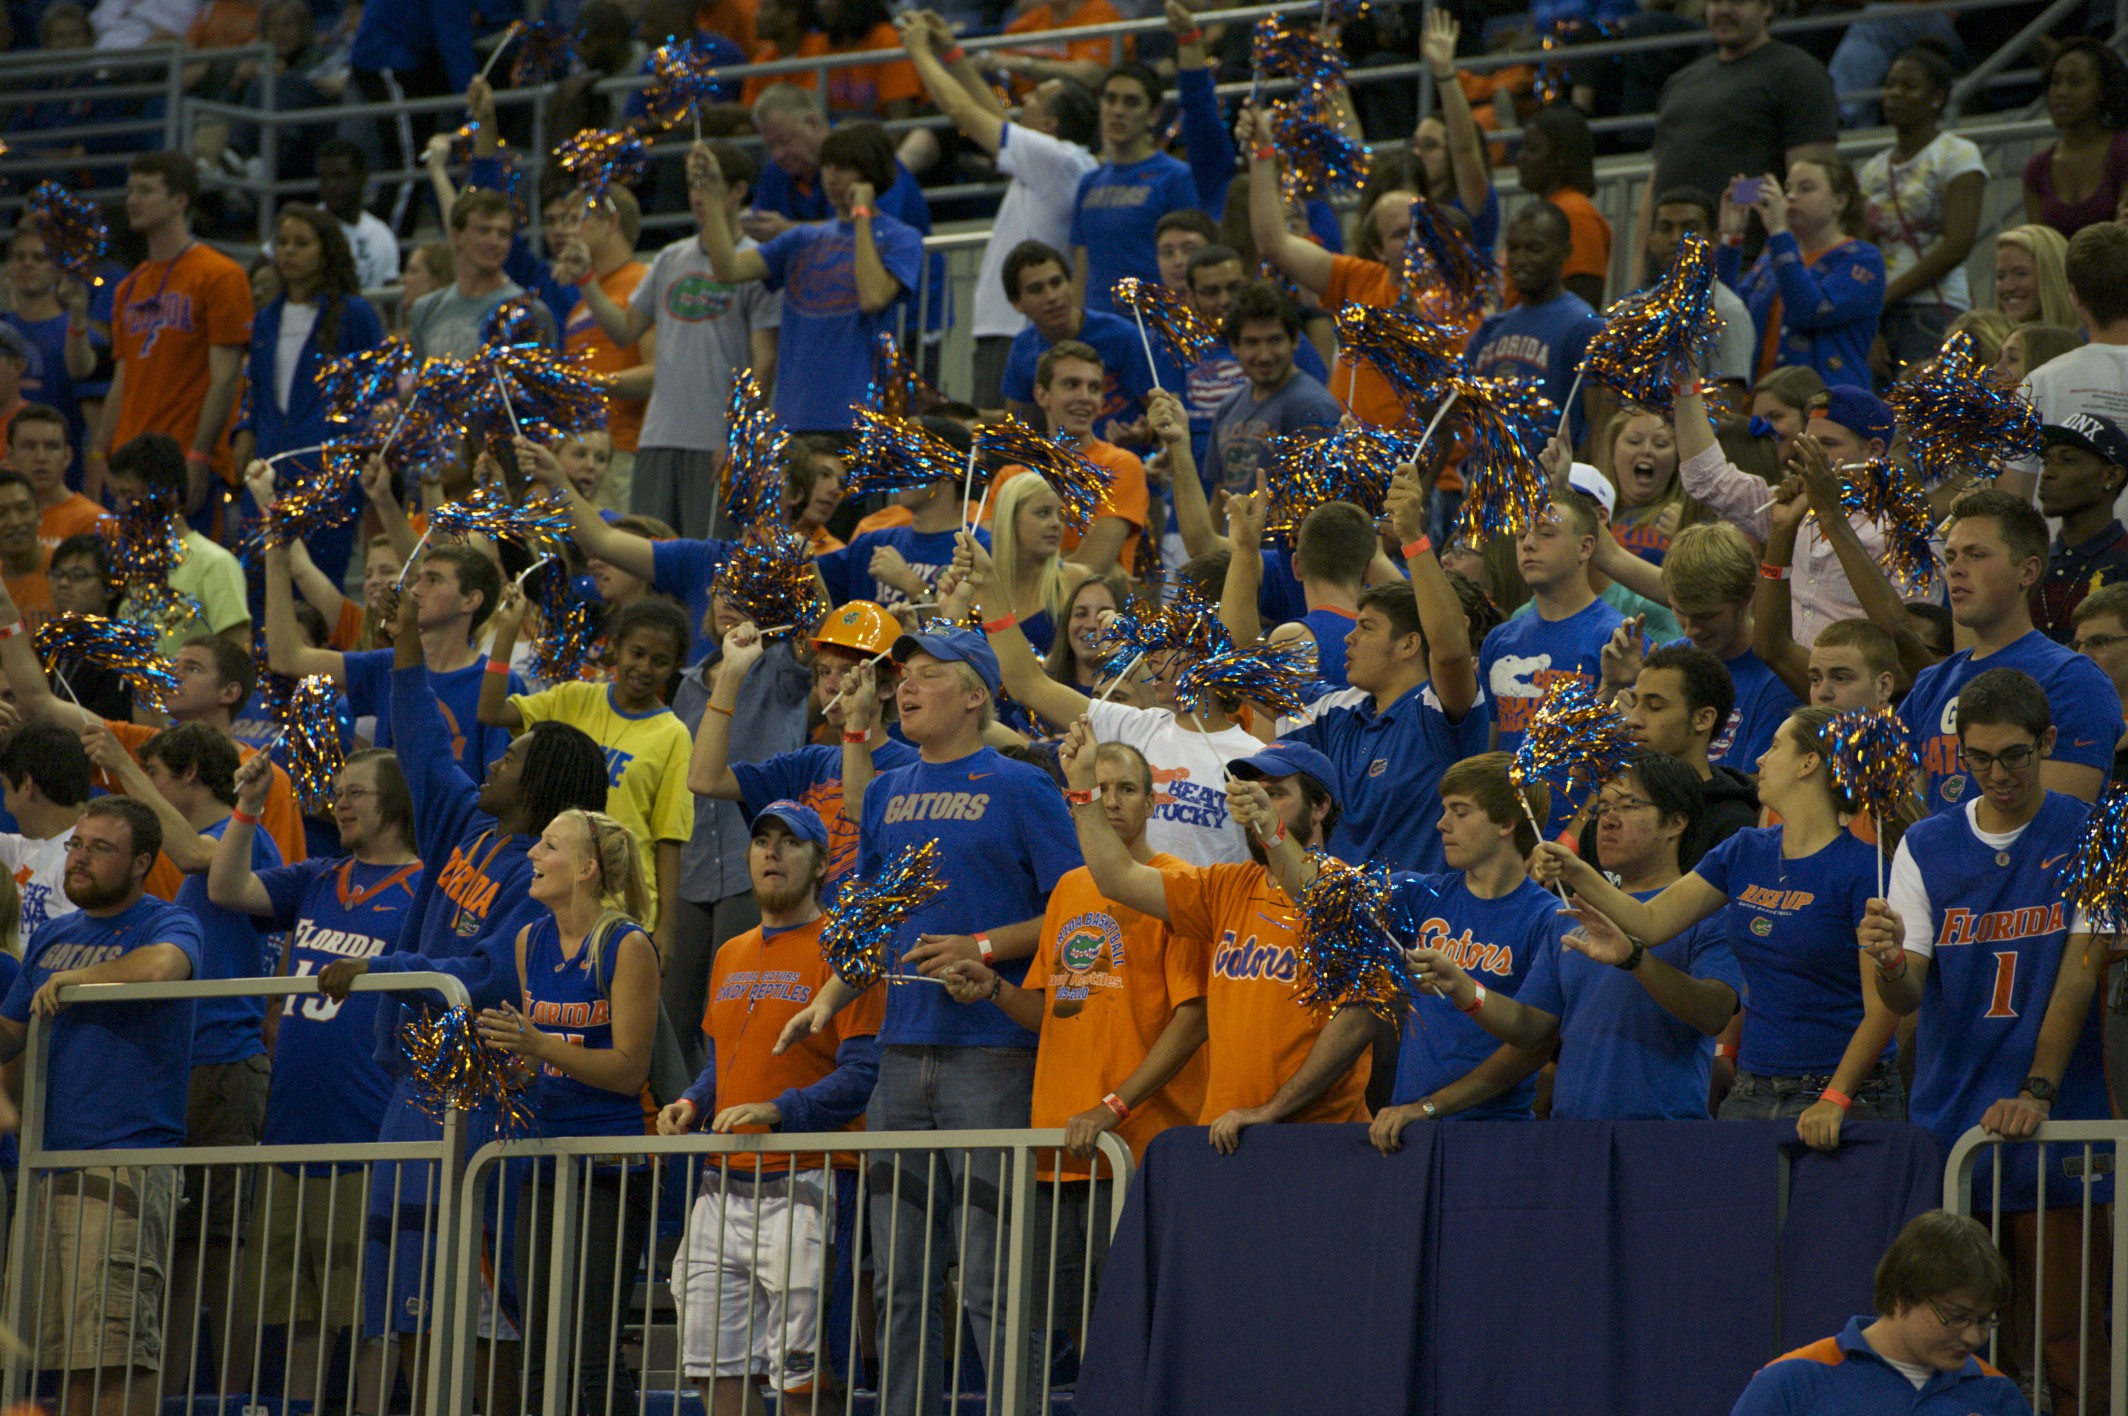 Florida fans came to cheer on the Men's Basketball Team on Sunday afternoon.